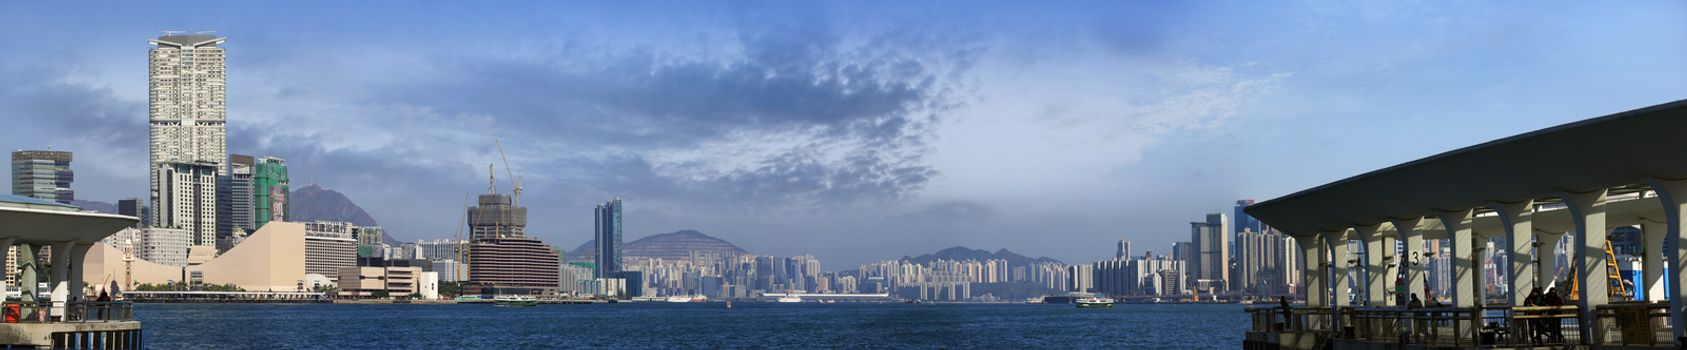 Hong Kong, Hong Kong S.A.R. - JENUARY 29, 2014: Star ferry crossing the Victoria Harbor with a view of Hong Kong Island skyline in the background.